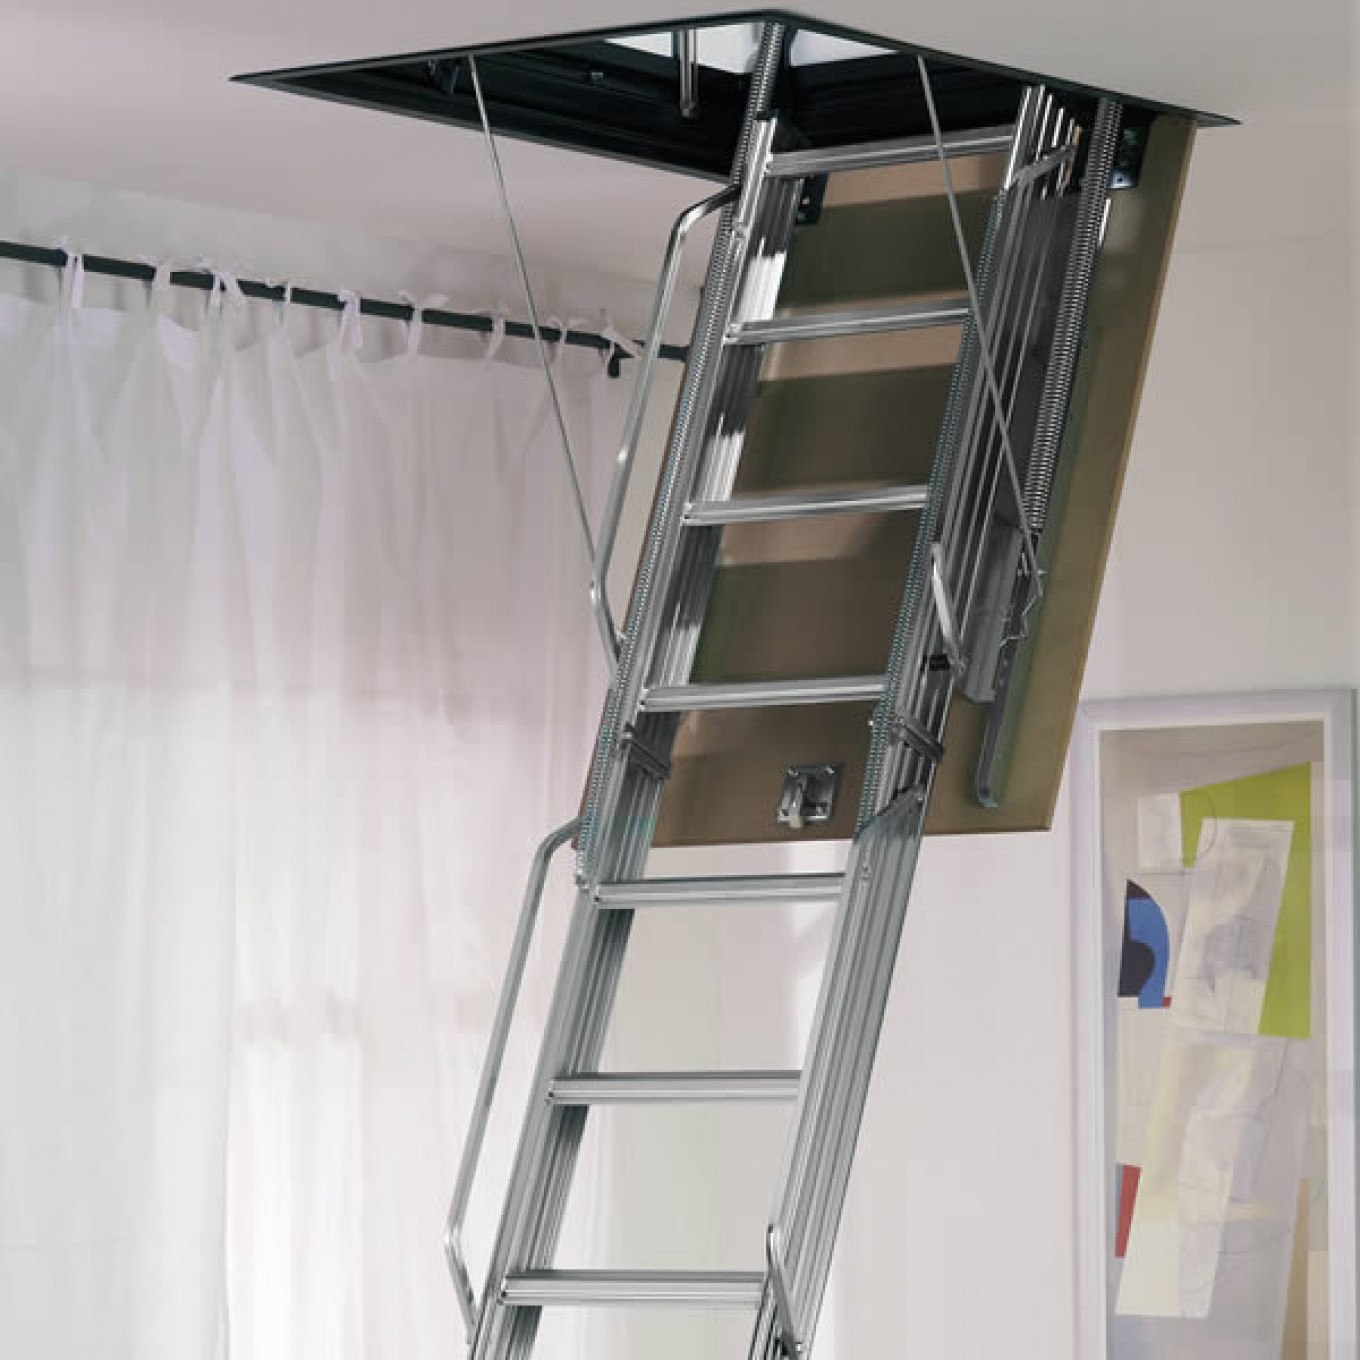 Dimes L3 Folding Steel Loft Ladder   3.00m Galvanised Steel   Loft Ladders  With Hatch   Loft Ladders Ladderstore.com